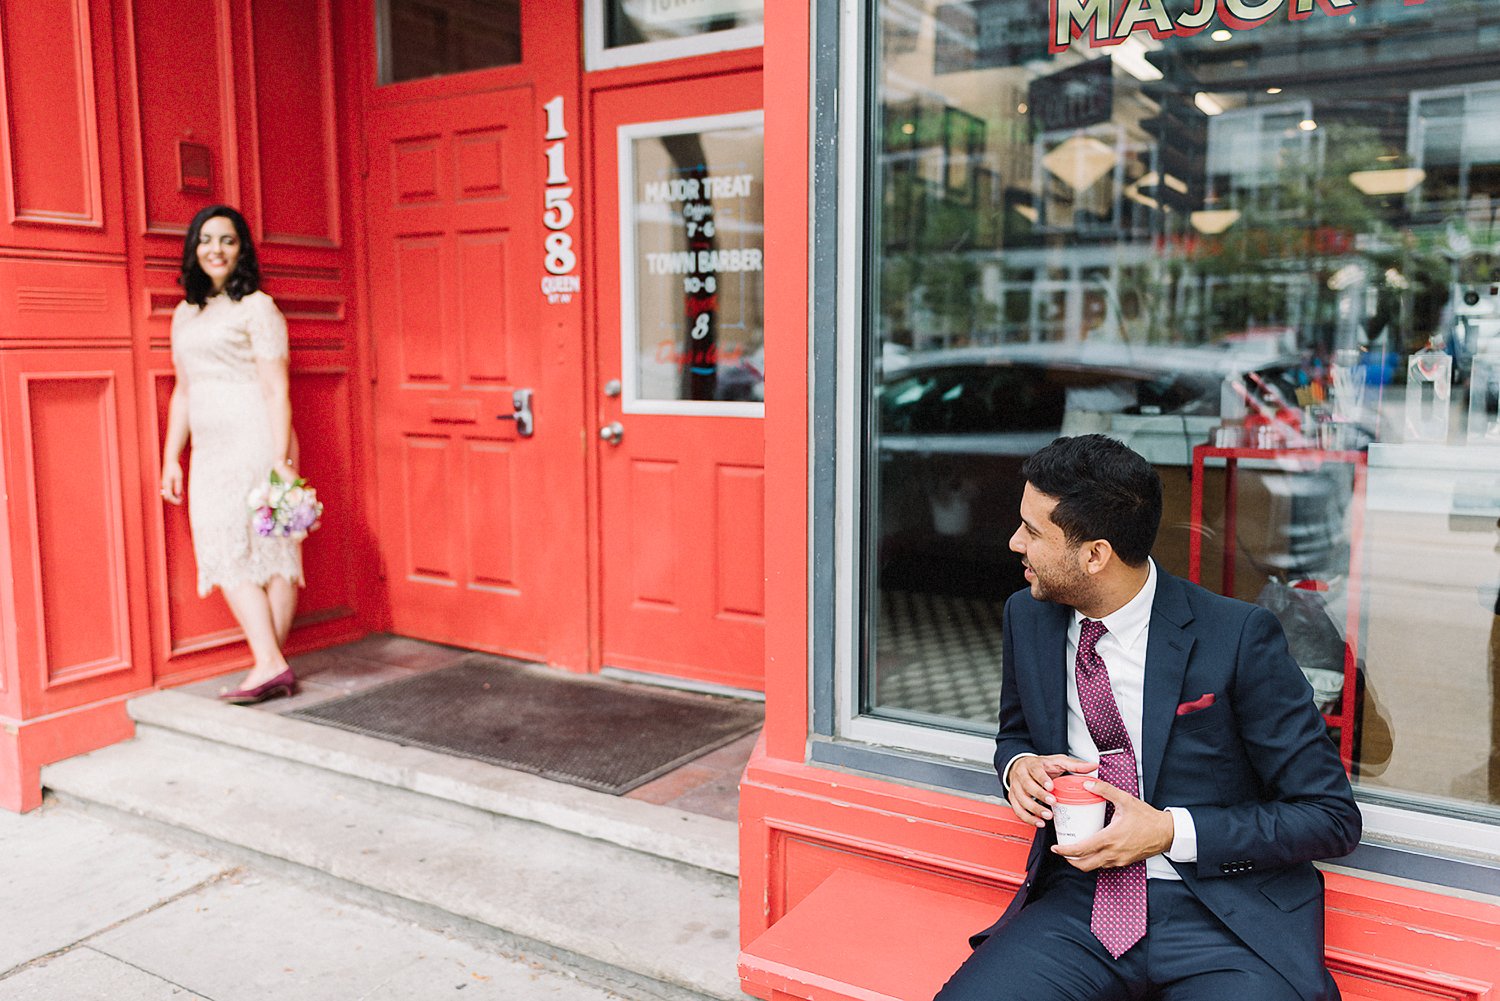 Minimalist-Wedding-at-Gladstone-Hotel-Best-Wedding-Photogrpahers-in-Toronto-with-Documentary-and-Editorial-Style-Ryanne-Hollies-Floral-Bouquet-and-Wedding-Dress-Detail-Portraits-along-queent-street-west-Groom-Portrait-candid.jpg